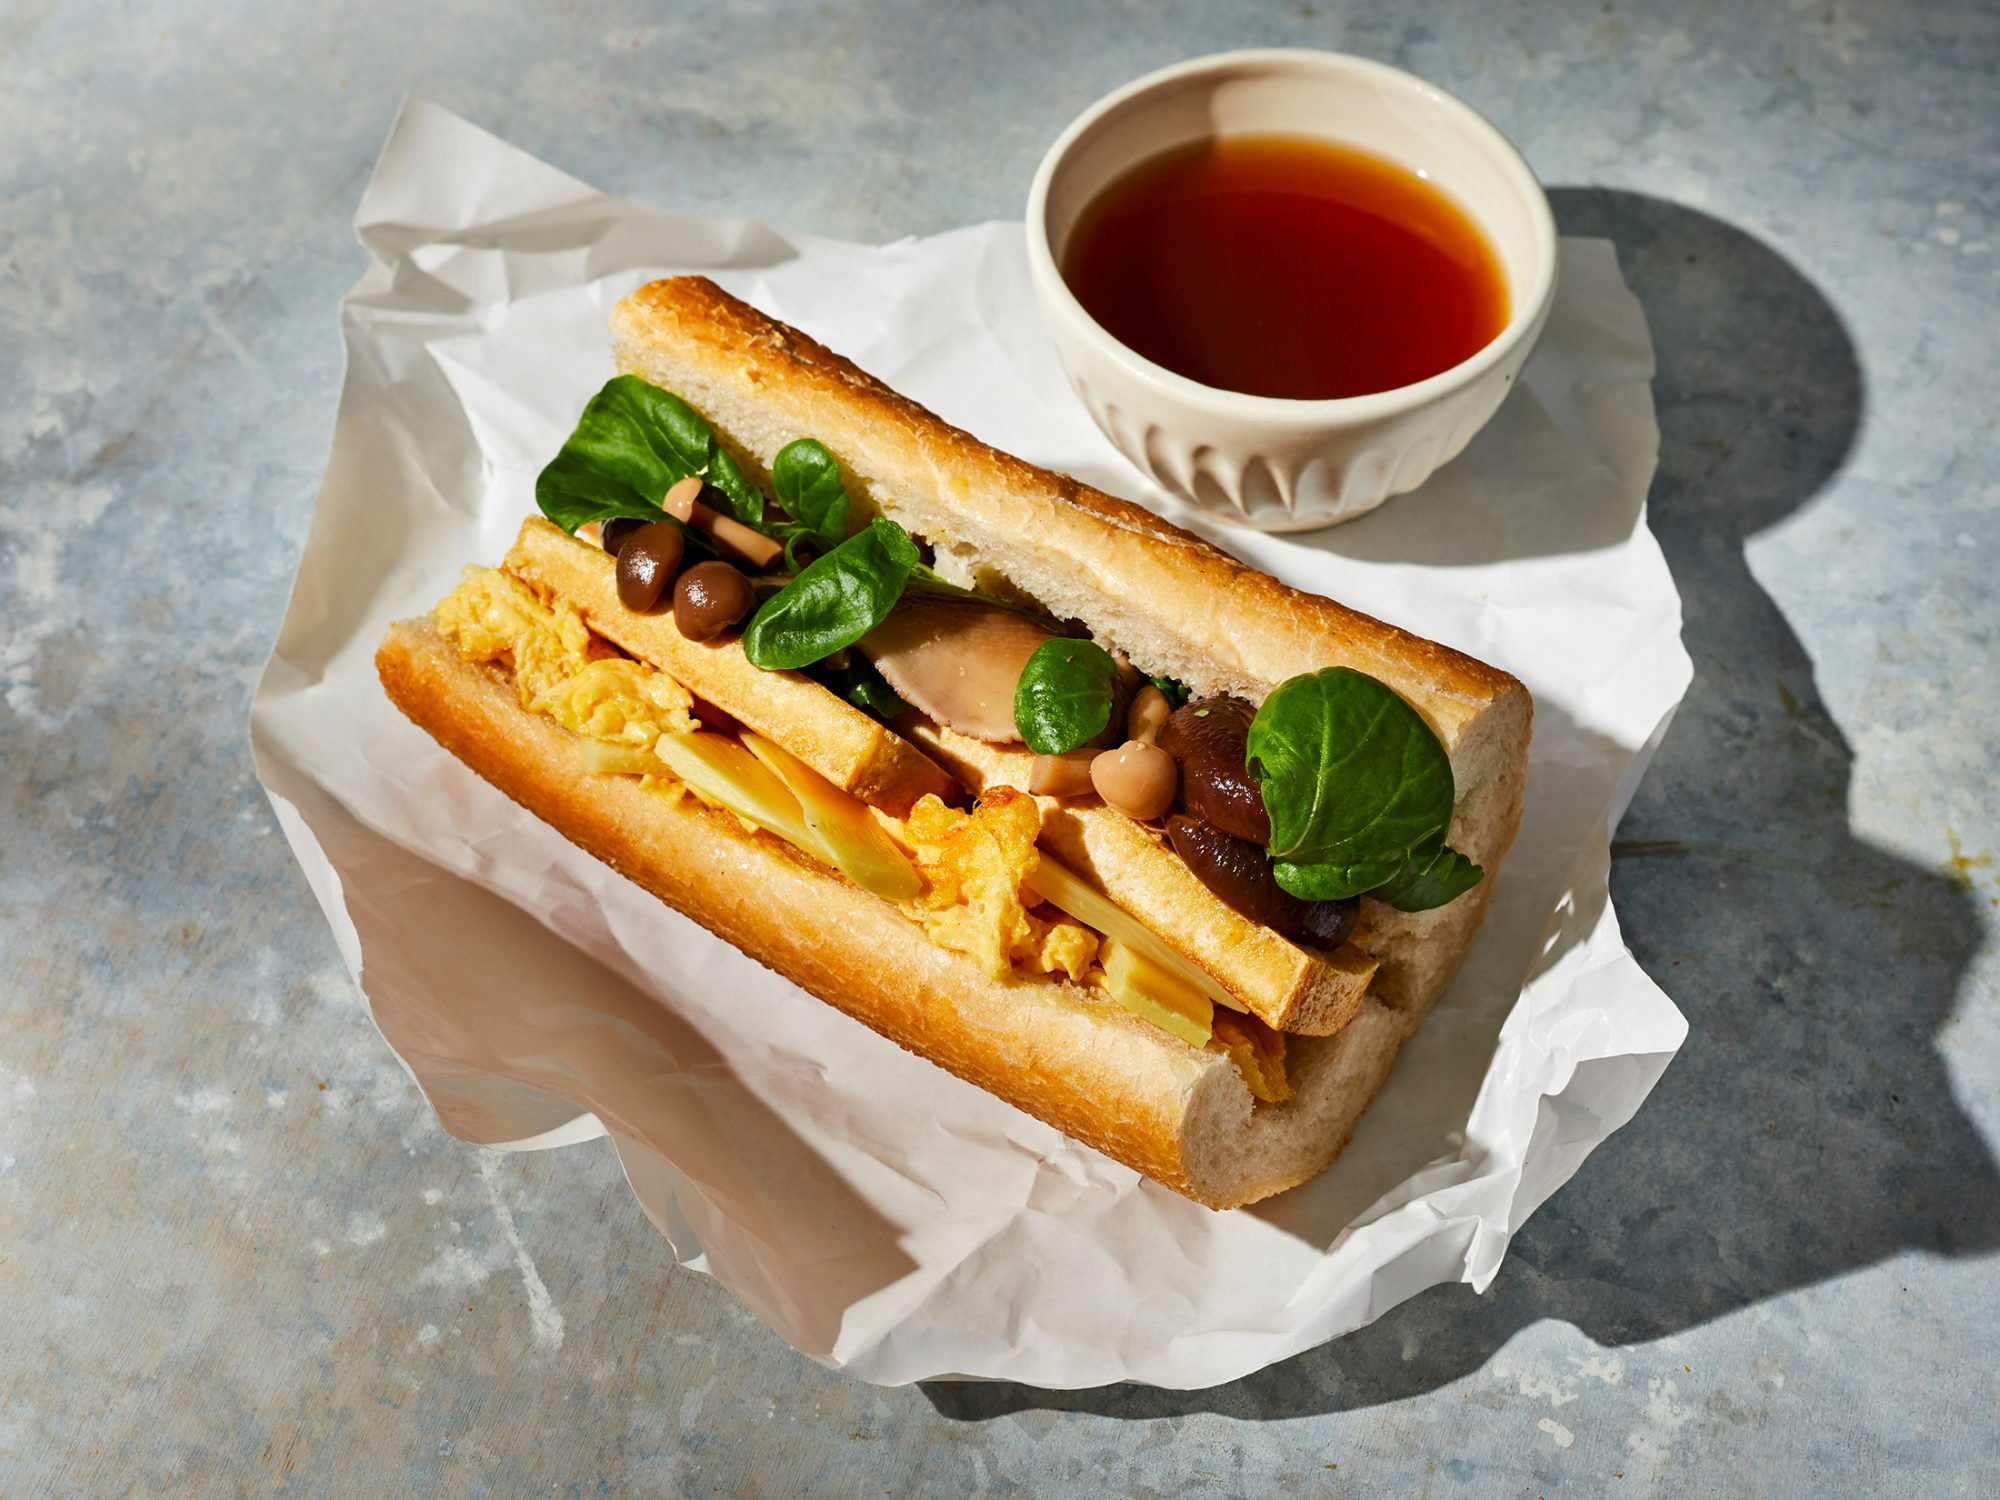 Hot-And-Sour Soup Sandwich image